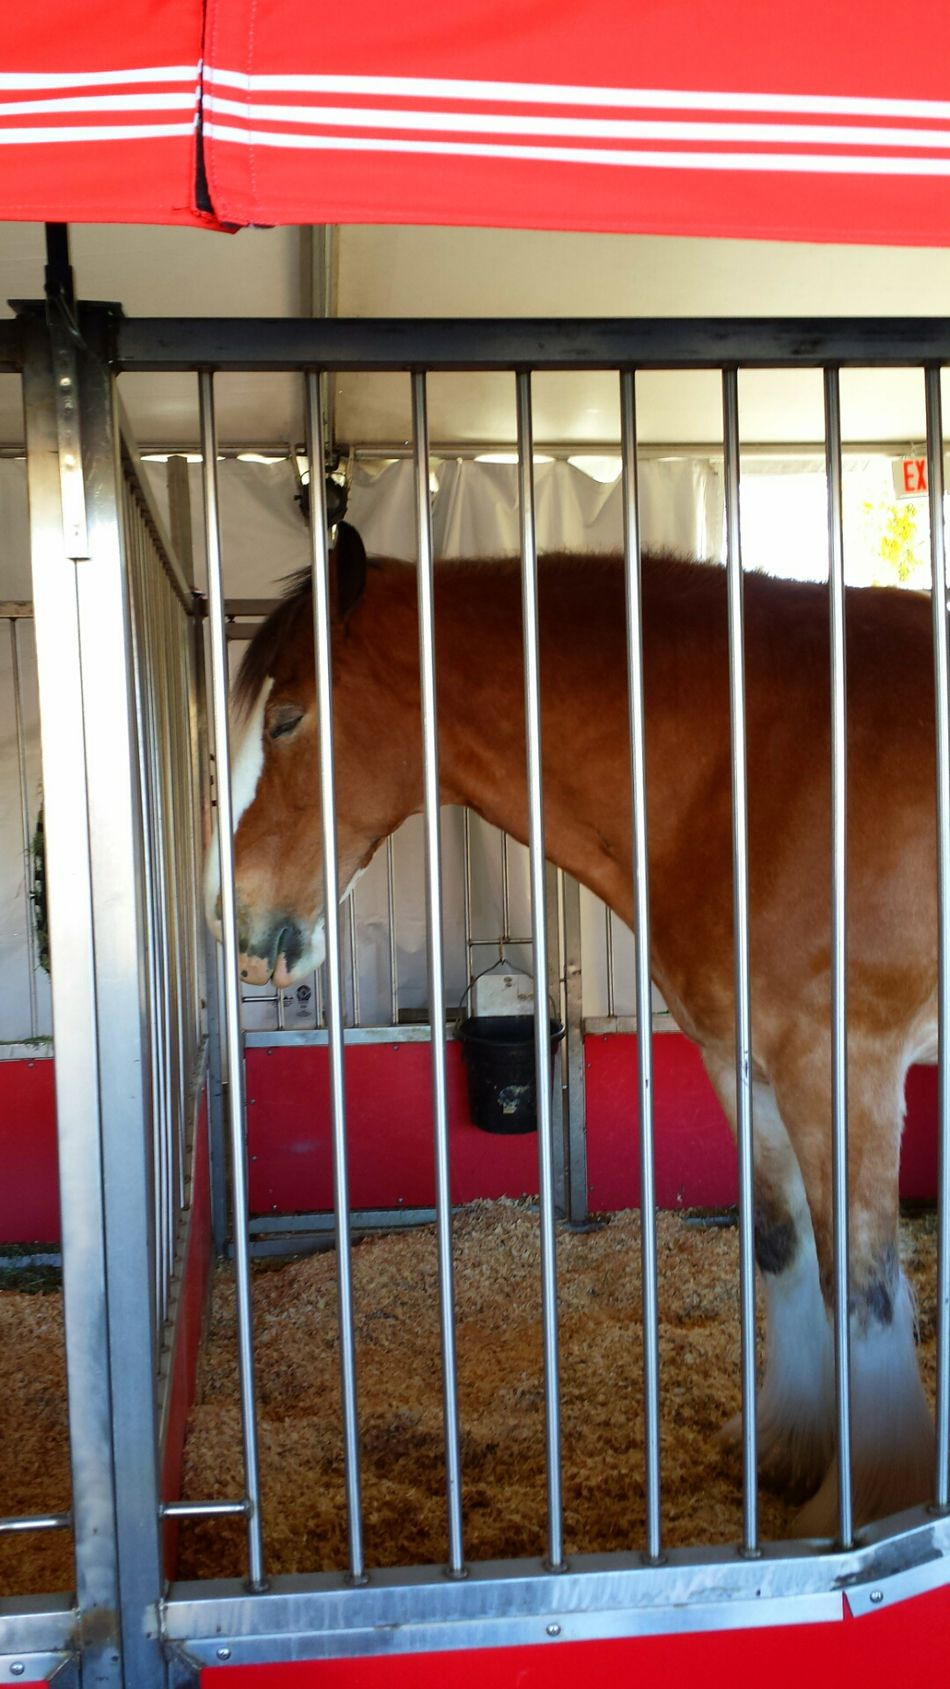 After the Show A Very tired Clydesdale Horse Budweiser Clydesdale Horse One Horse Tired 😴 Sleeping Budweiser Fairfield Ca